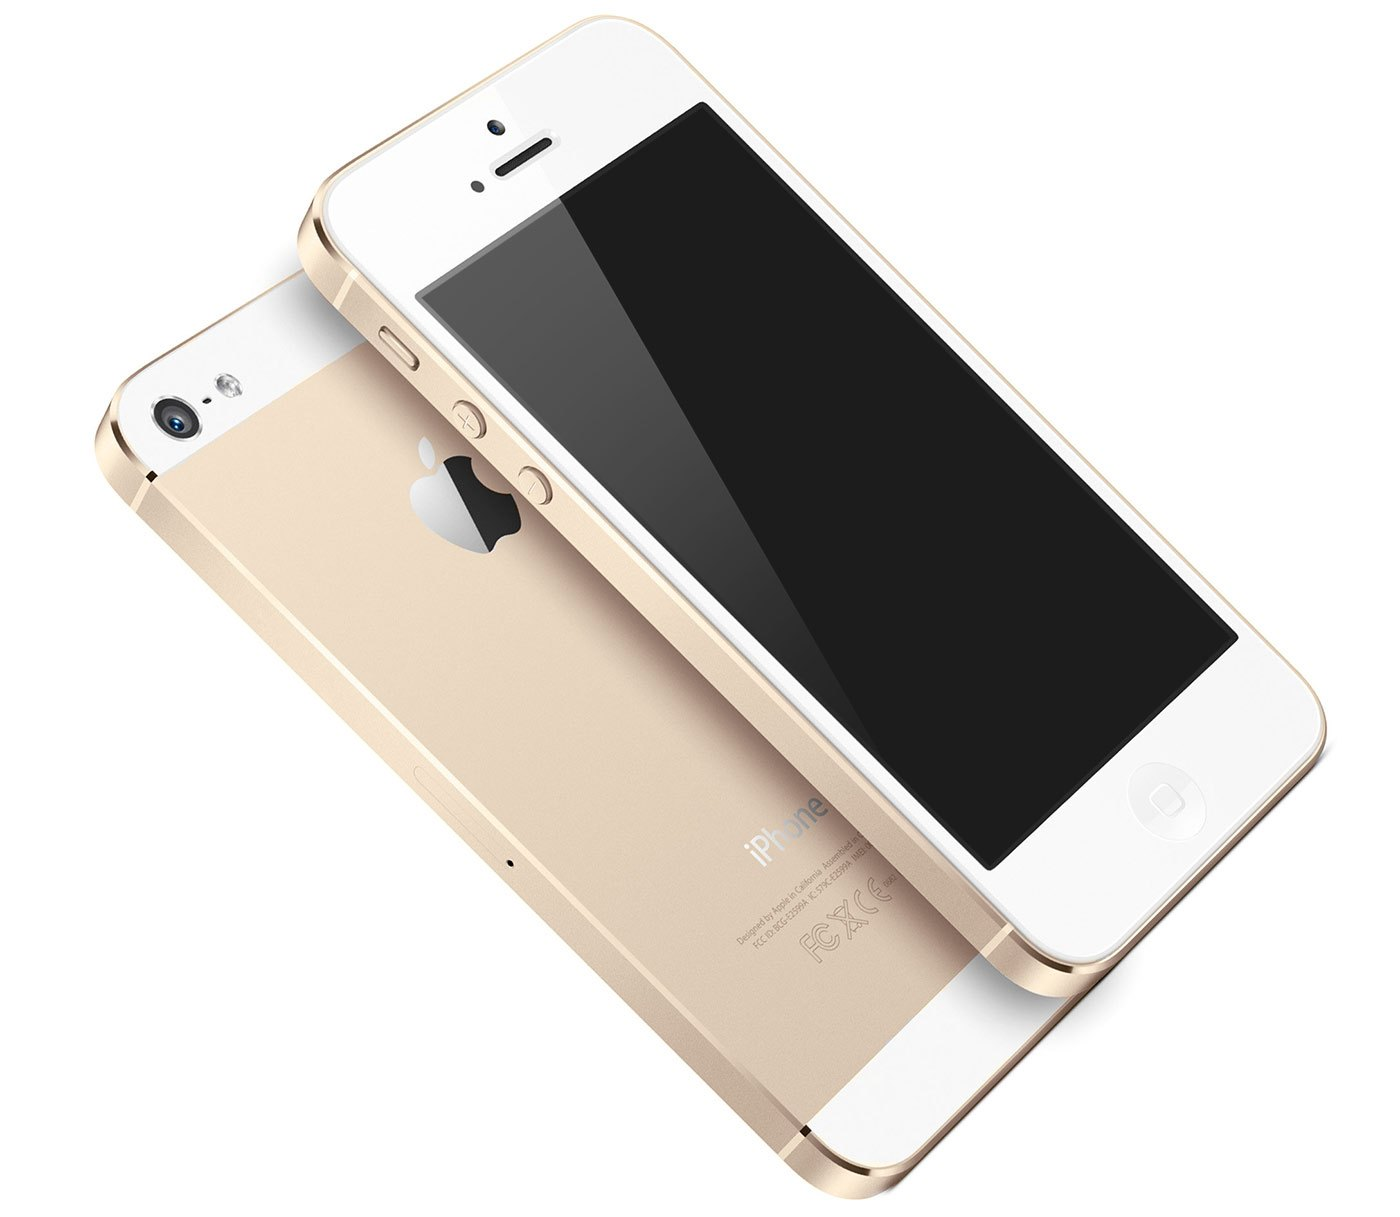 gold-iPhone-Shop-Le-Monde